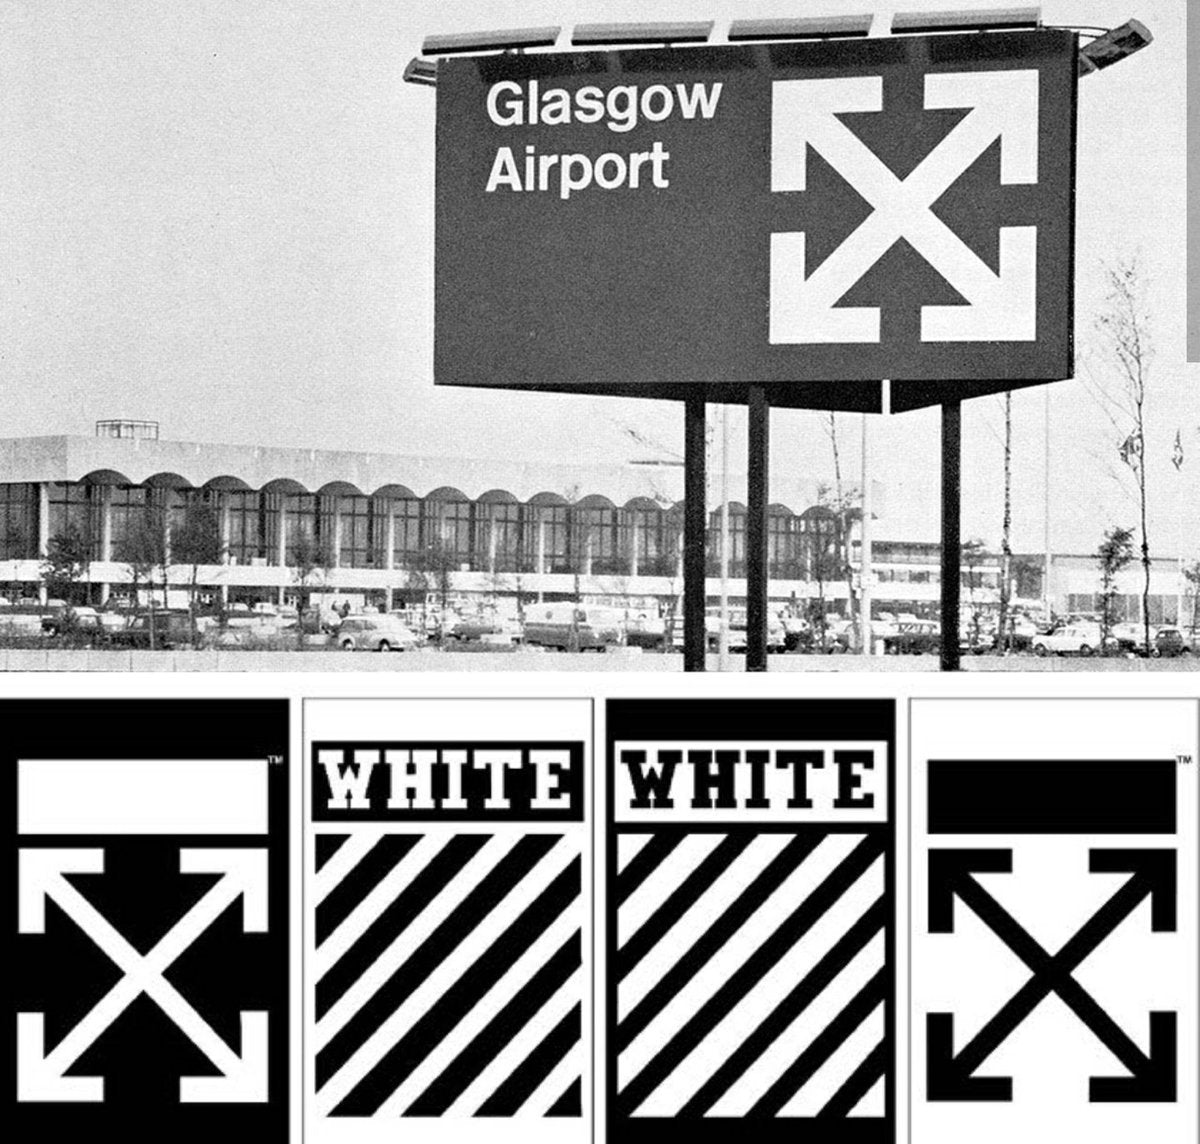 Glasgow-off-white-logo-azmt